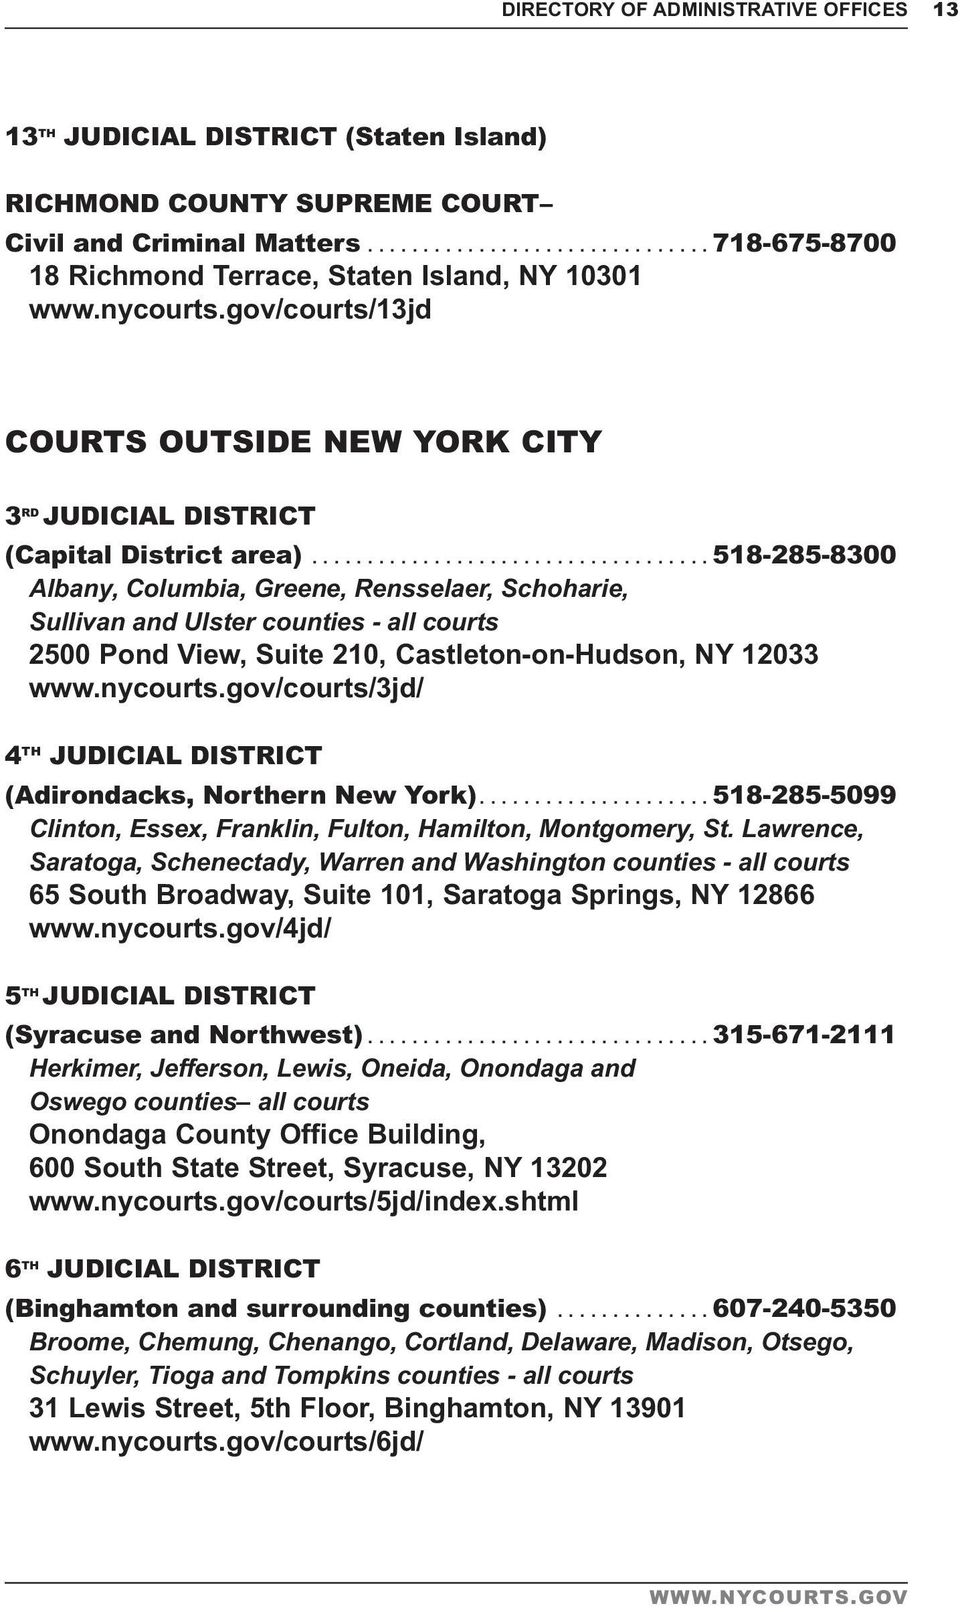 ..518-285-8300 Albany, Columbia, Greene, Rensselaer, Schoharie, Sullivan and Ulster counties - all courts 2500 Pond View, Suite 210, Castleton-on-Hudson, NY 12033 www.nycourts.